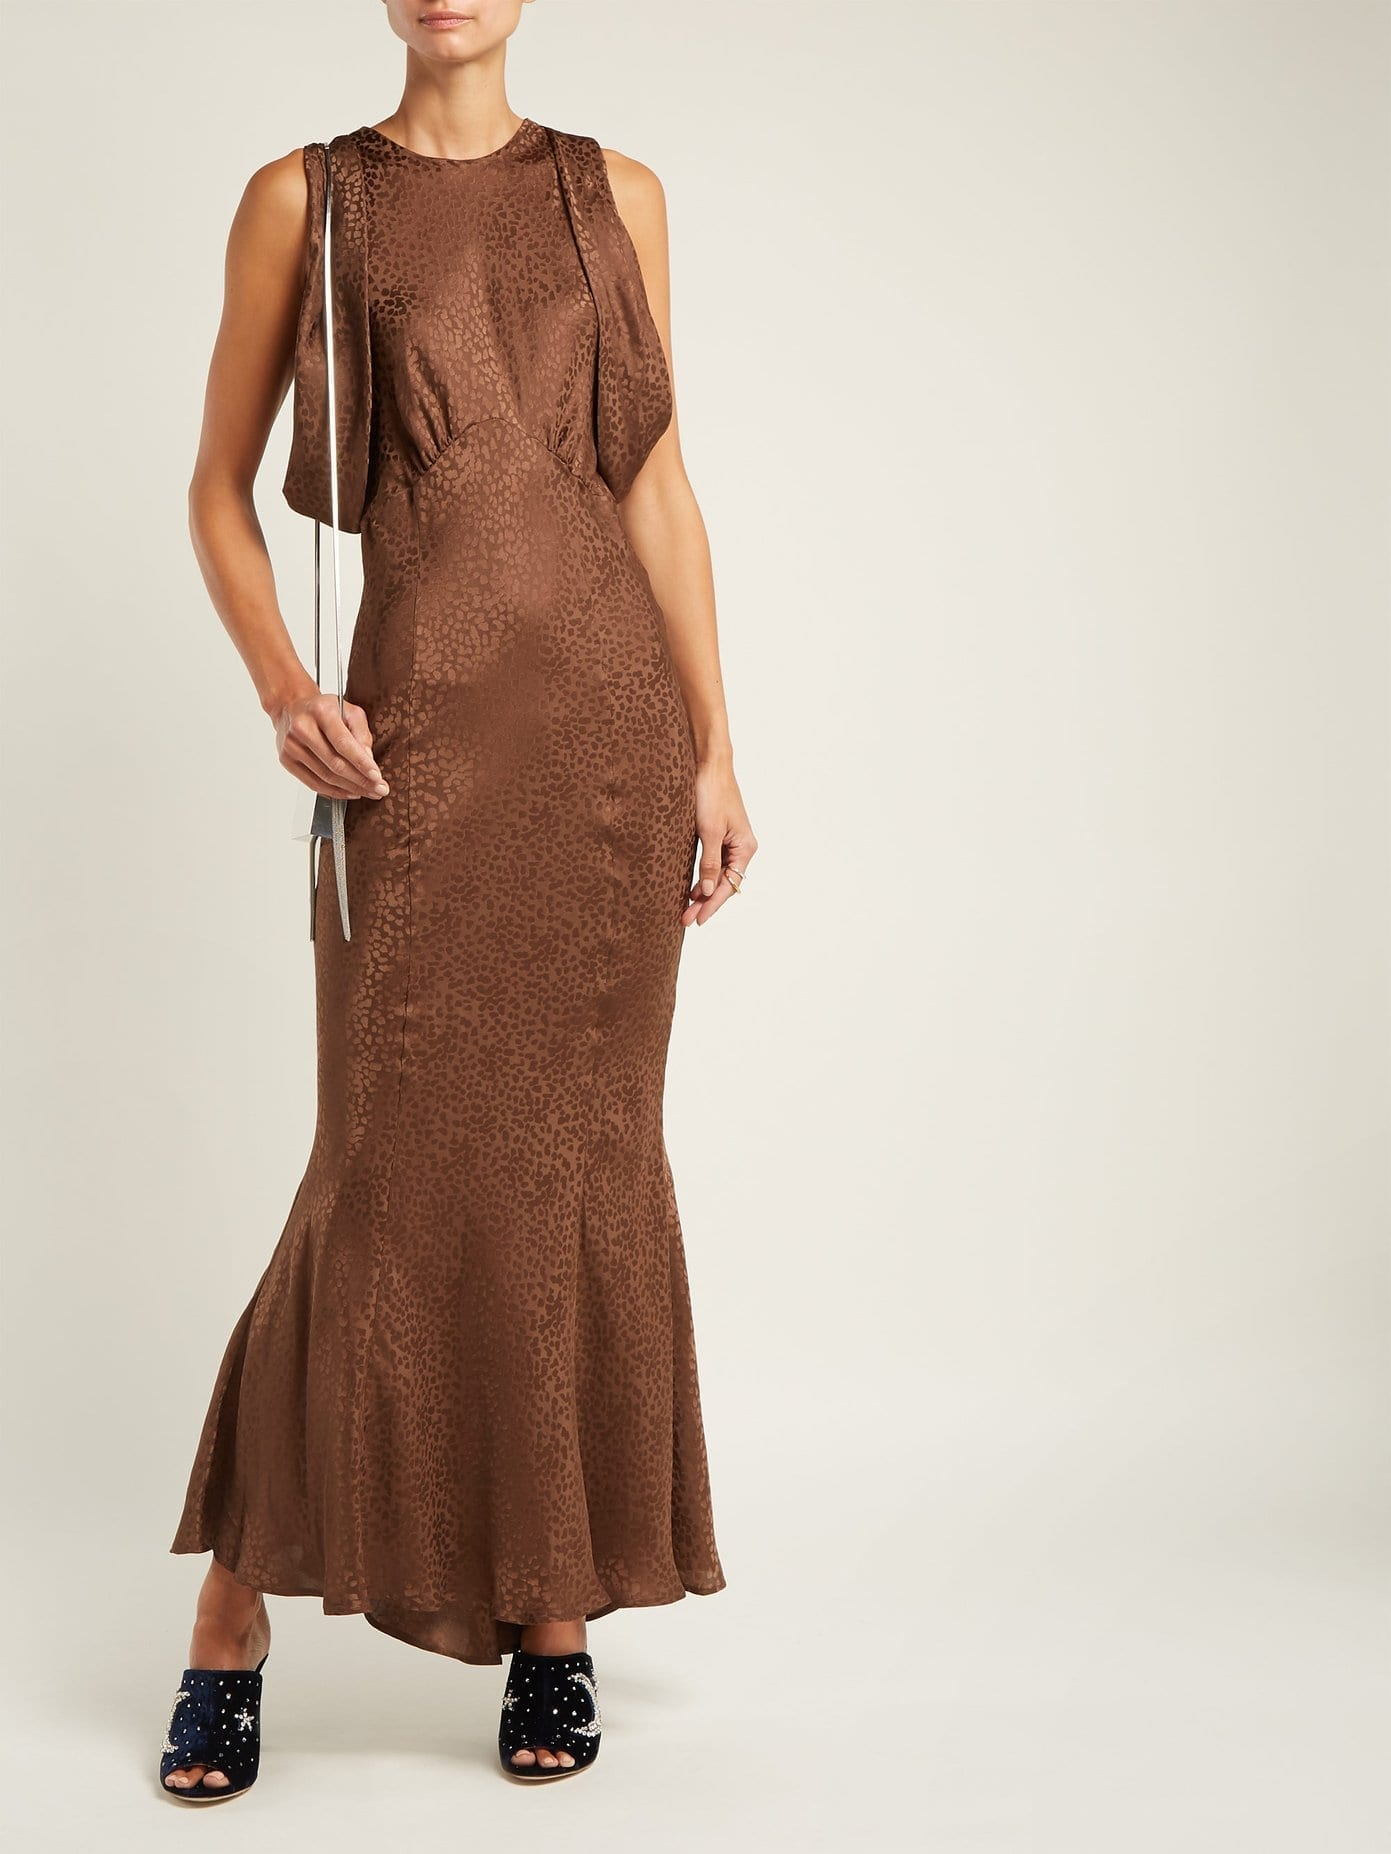 Attico Cheetah Jacquard Silk Draped Sleeved Brown Dress